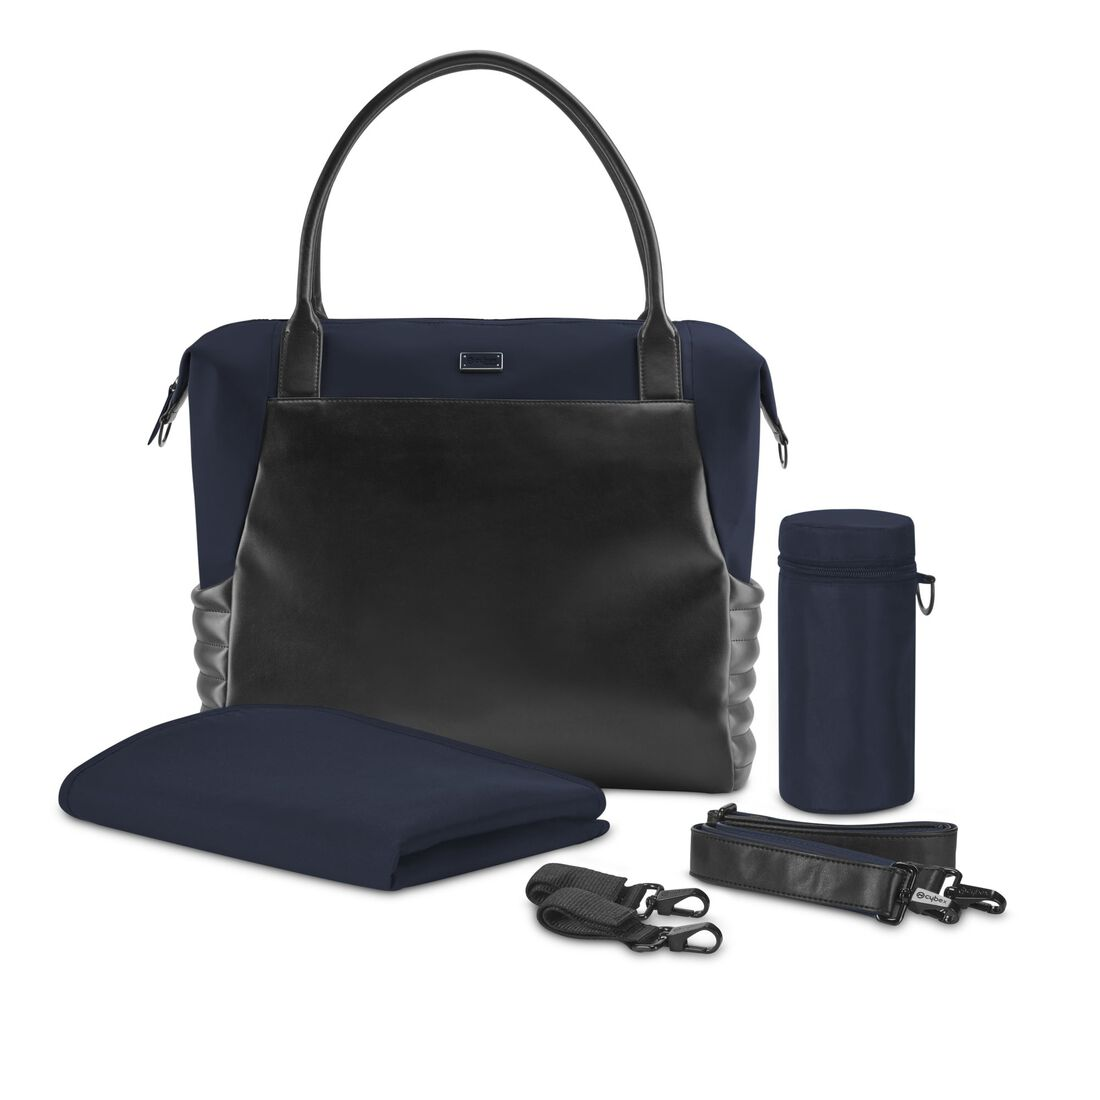 CYBEX Priam Changing Bag - Nautical Blue in Nautical Blue large image number 2